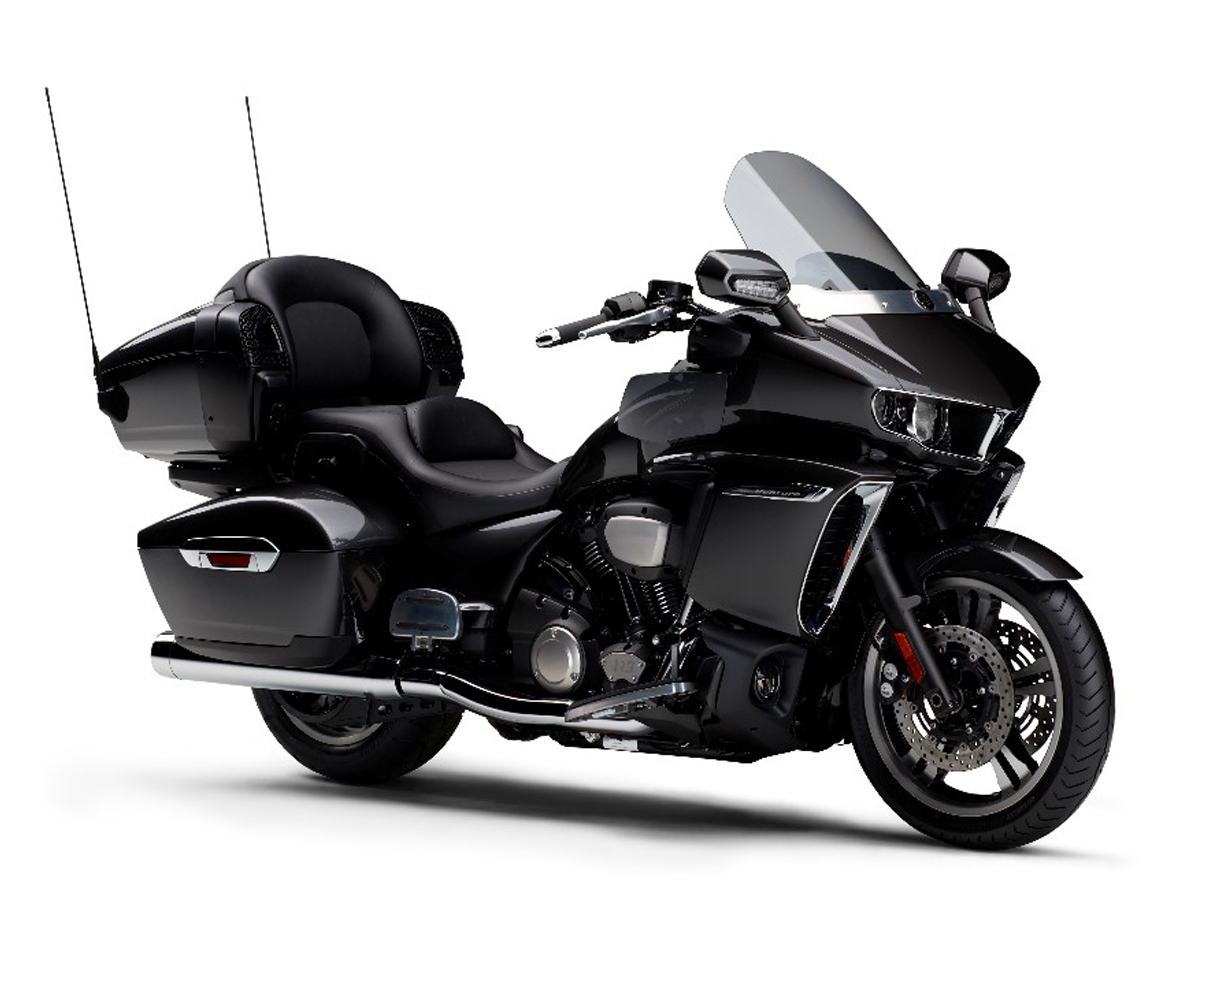 Yamaha motor to launch star venture cruiser for north for Yamaha north county